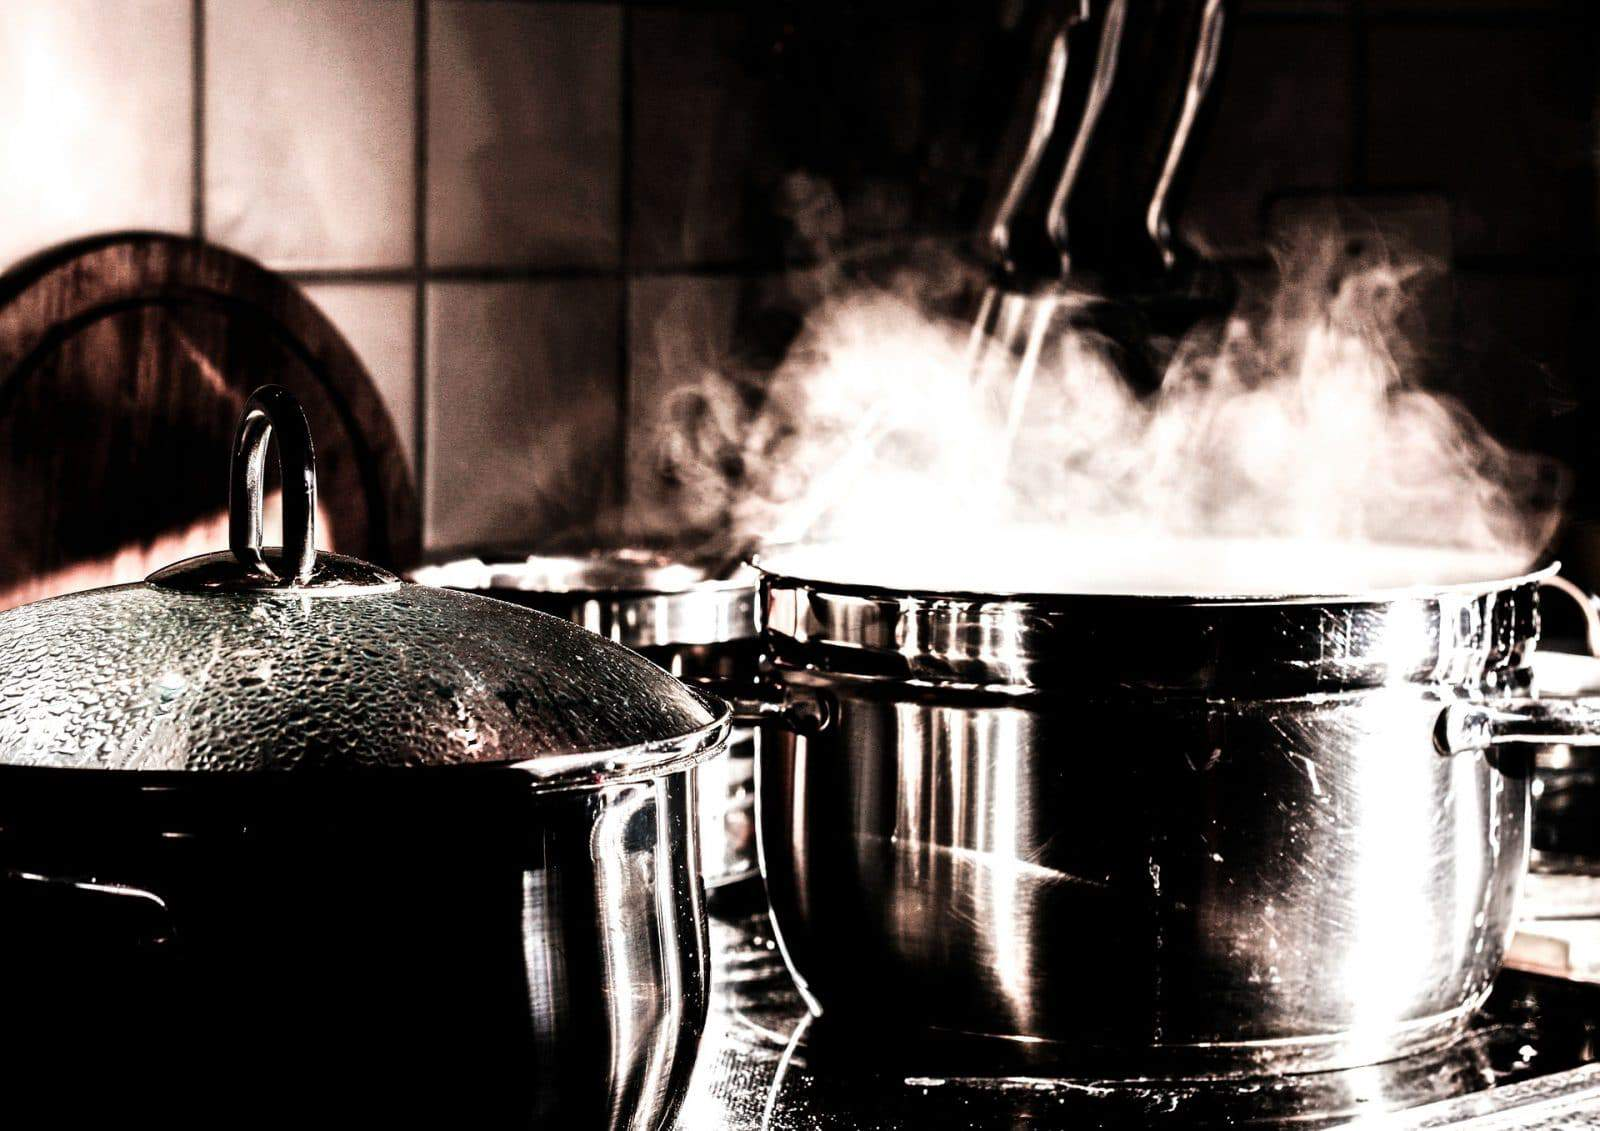 Boiling water in a cooking pot